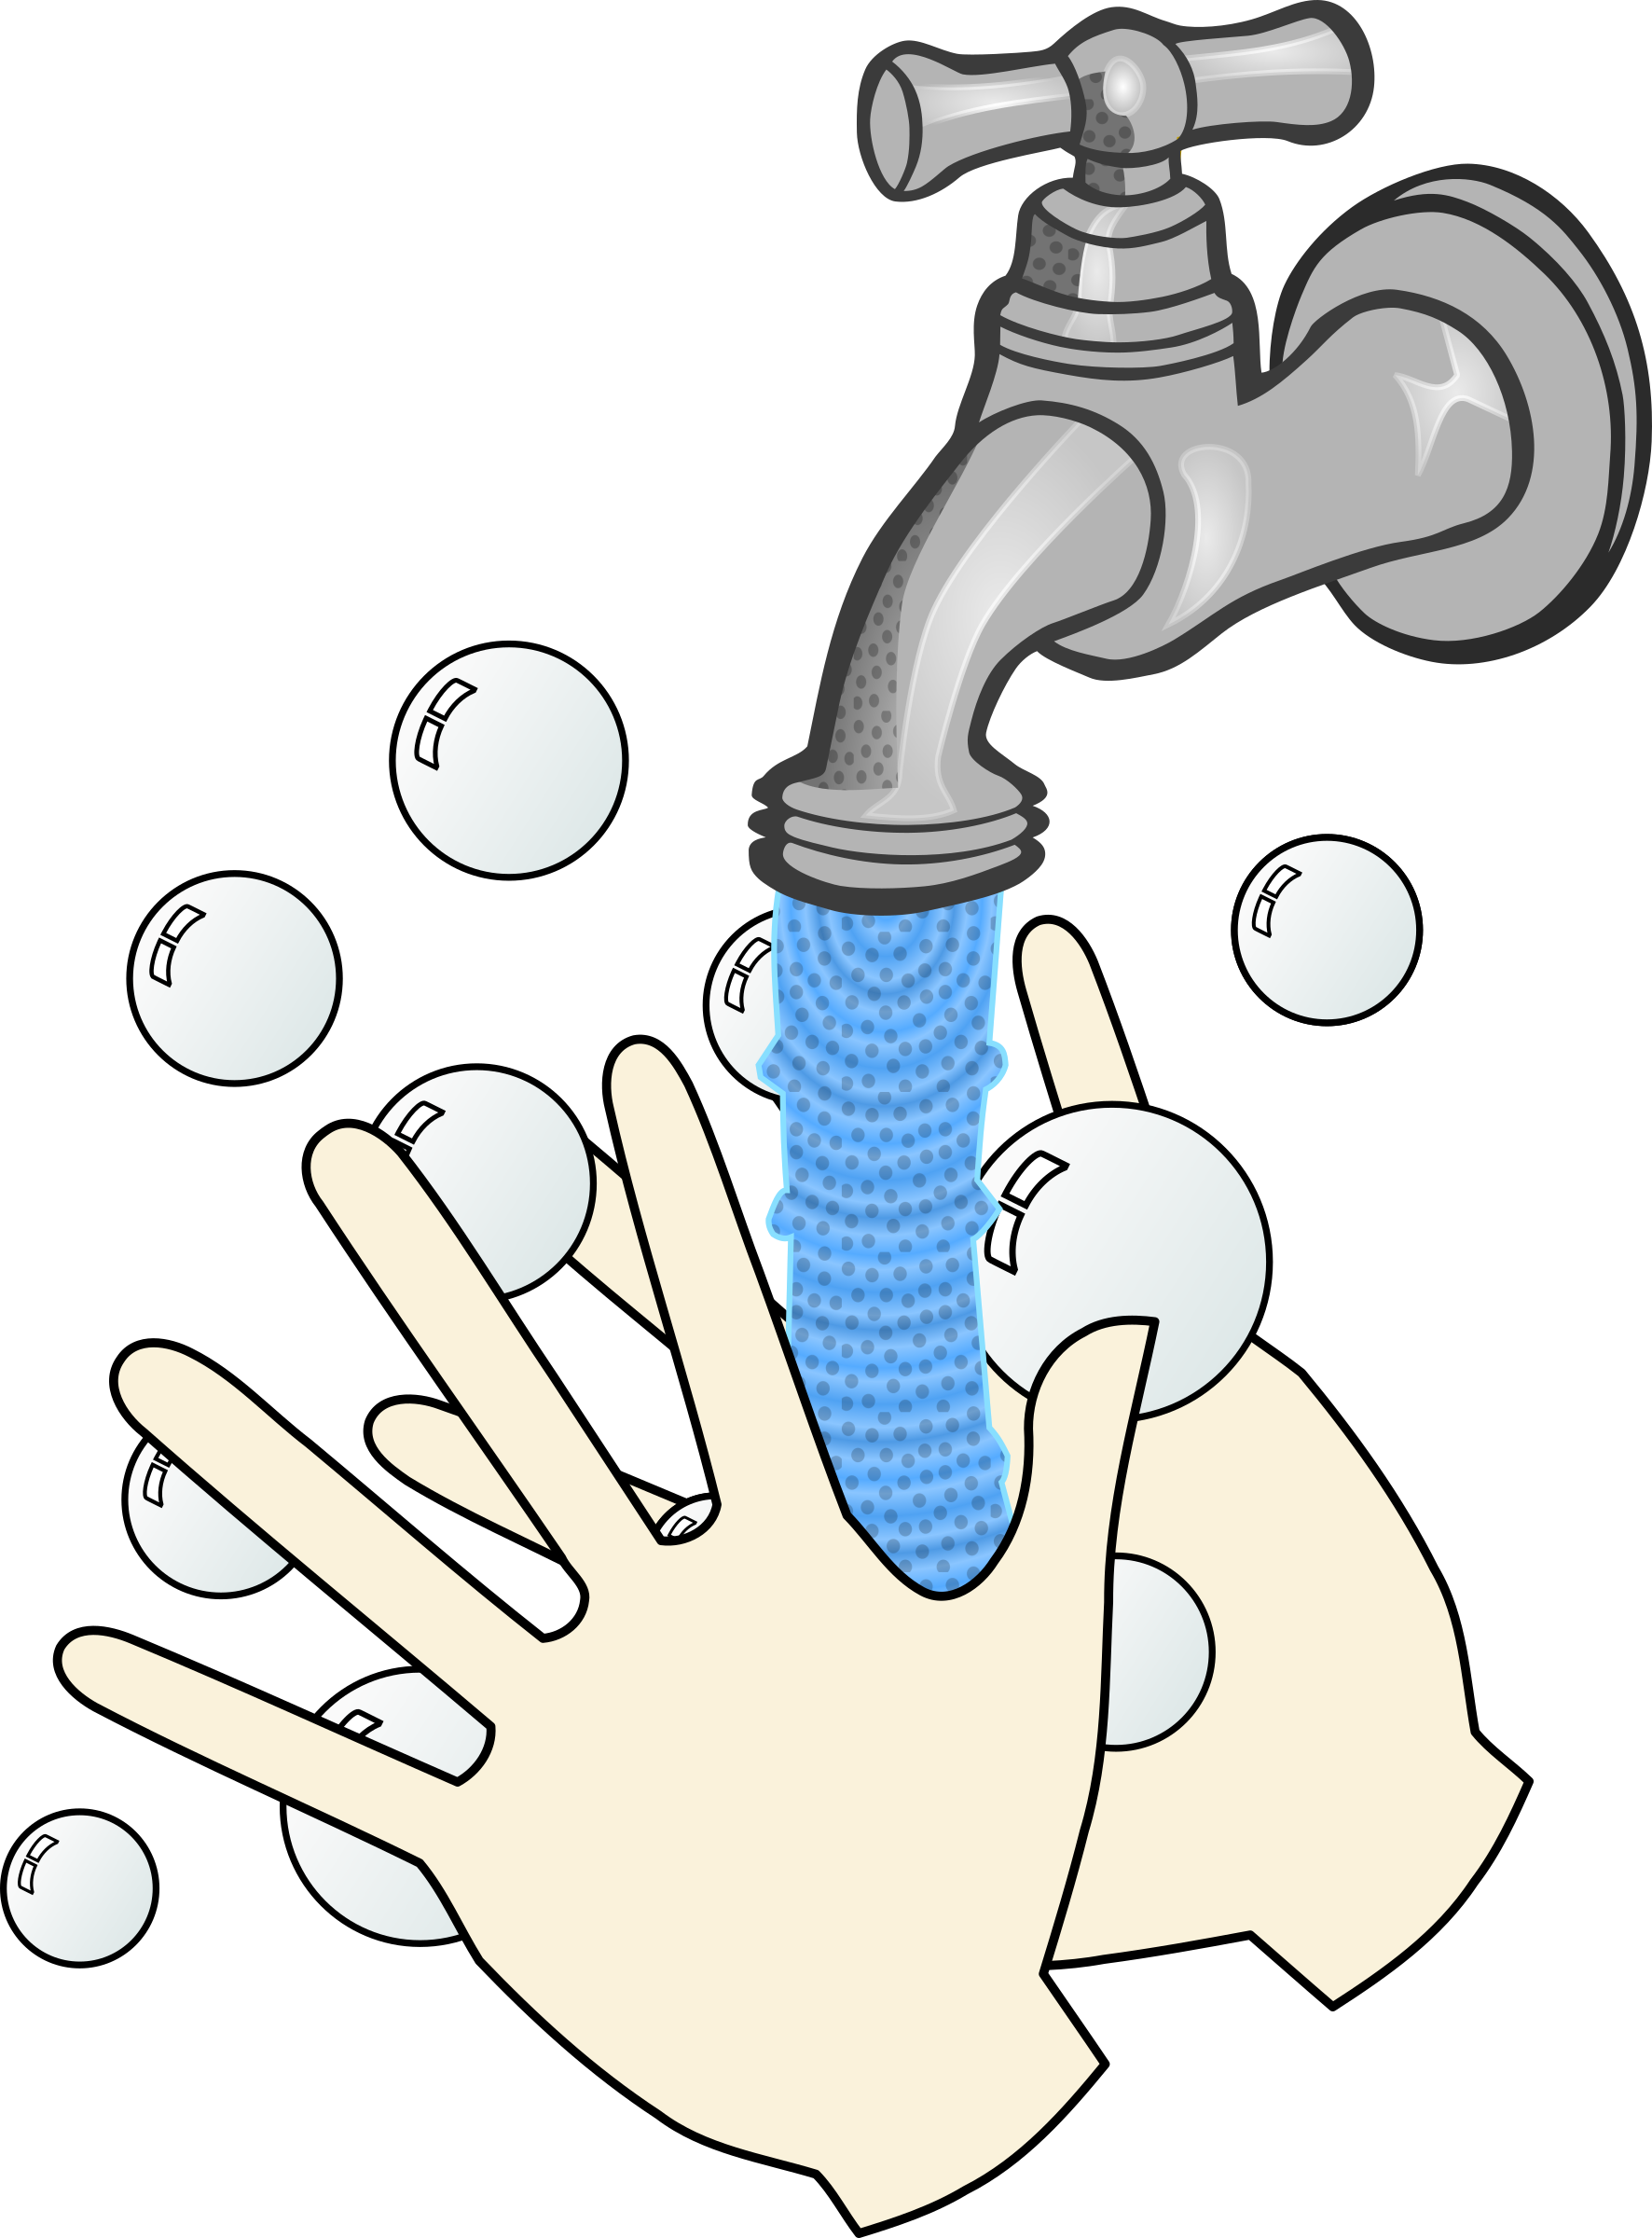 clip transparent library Washing hands with soap. Wet clipart wet rag.